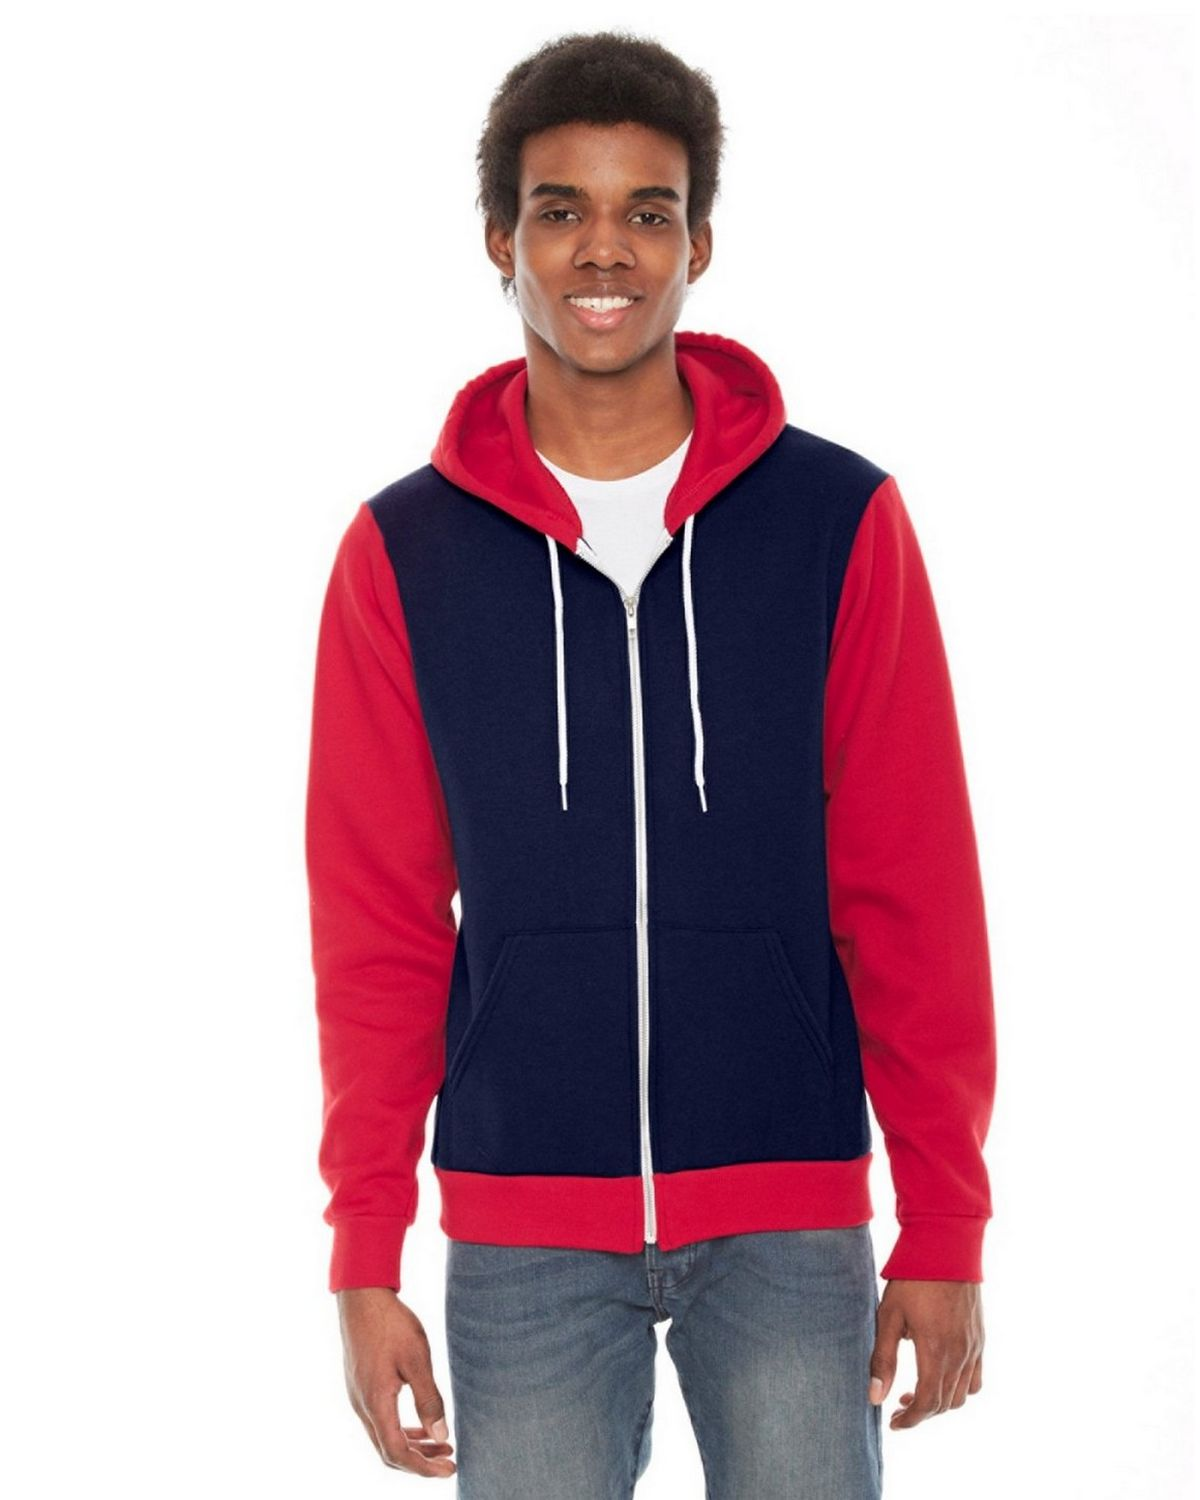 American Apparel F497 Unisex Flex Fleece Hoodie - Navy - L F497